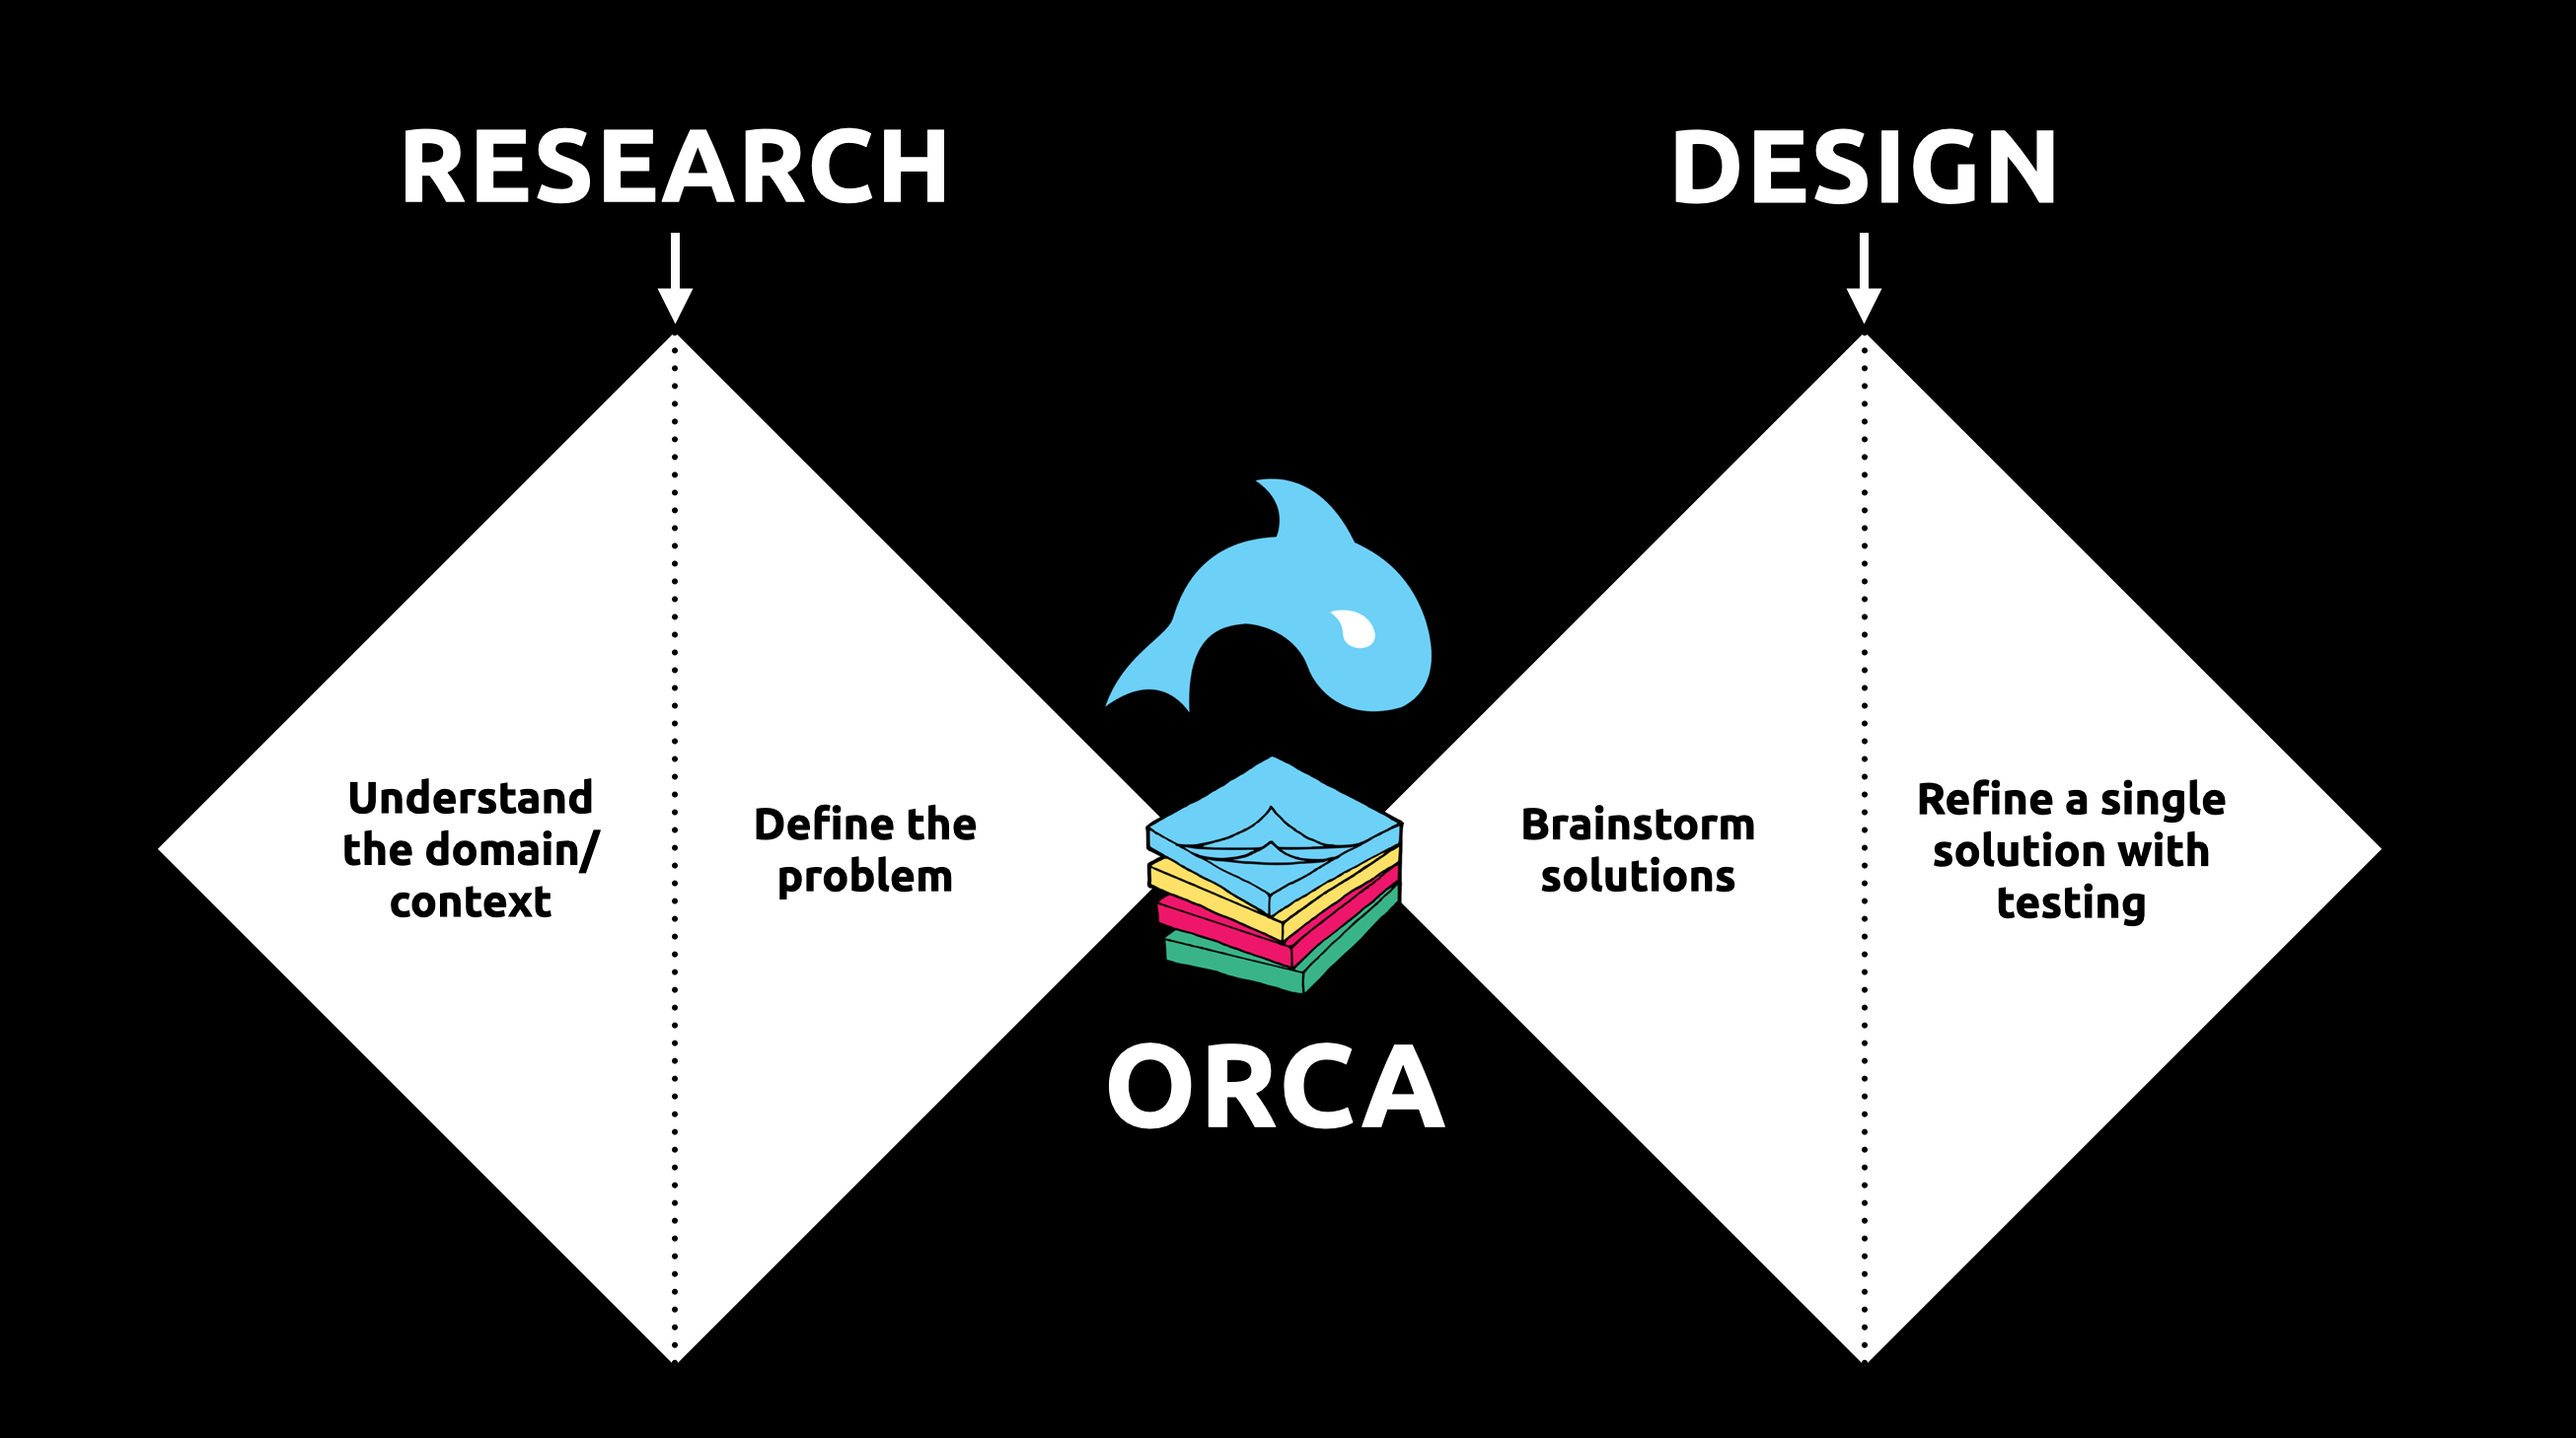 Research diamond, design diamond, with the ORCA process at the intersection.